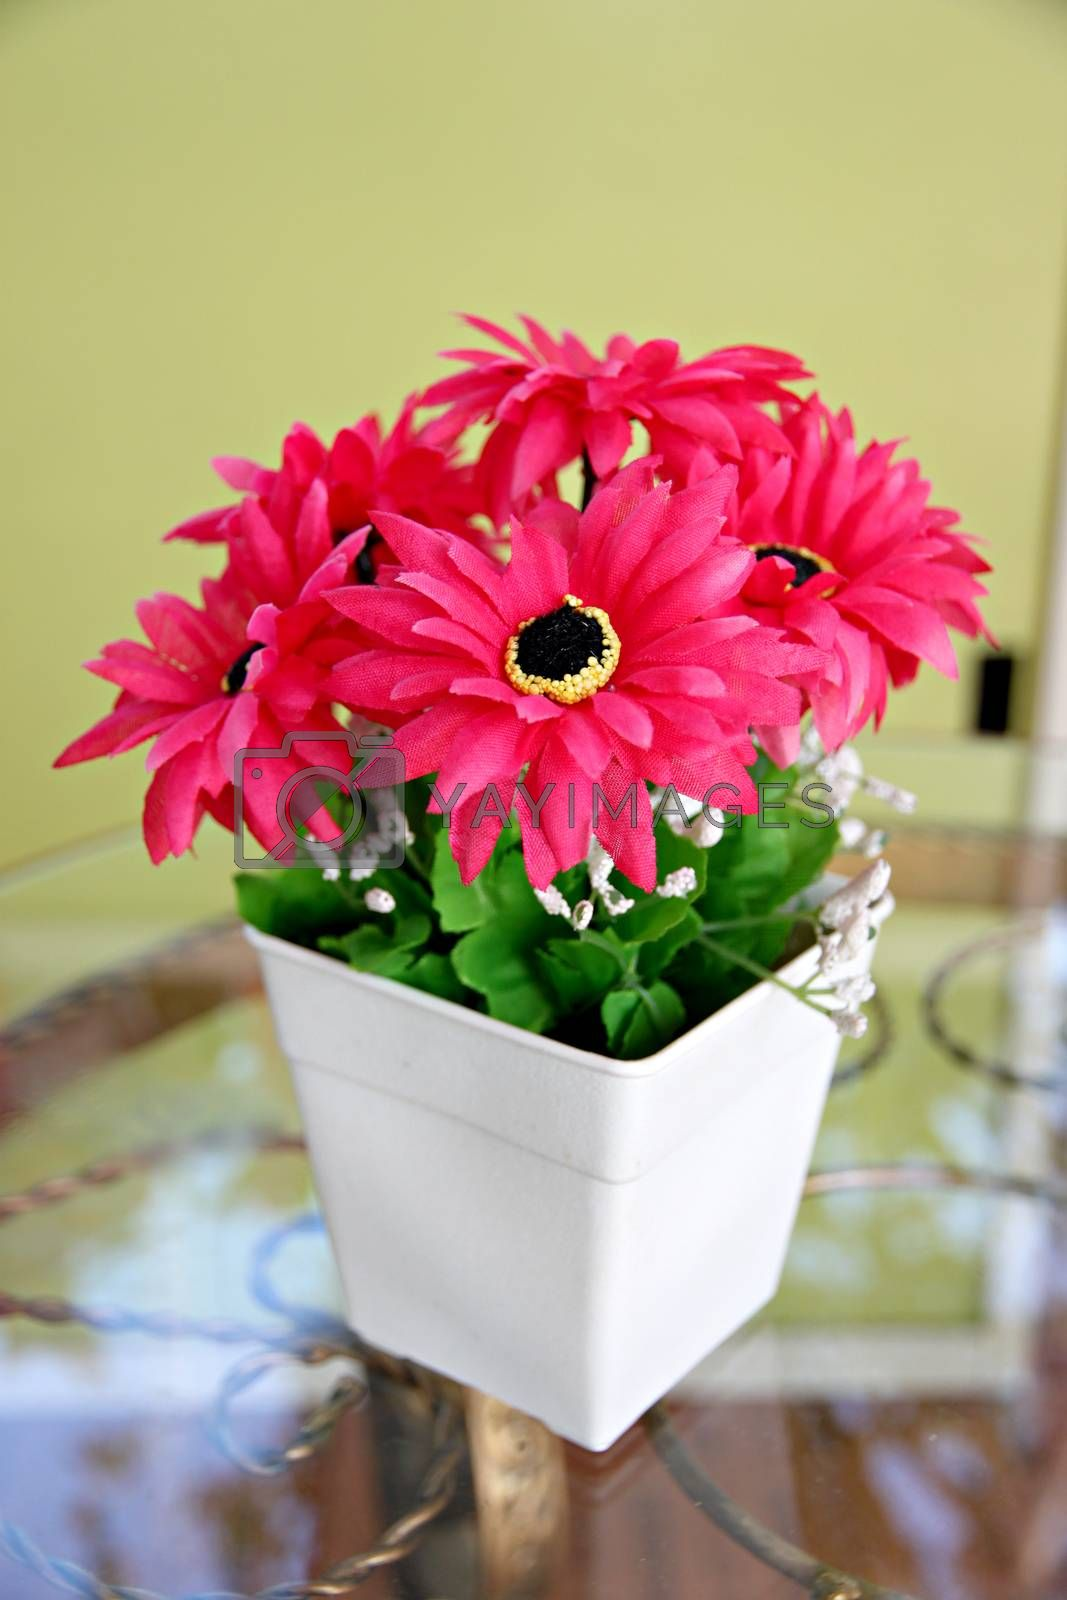 Pink flowers in a white potted and Placed on glass table with soft yellow background.